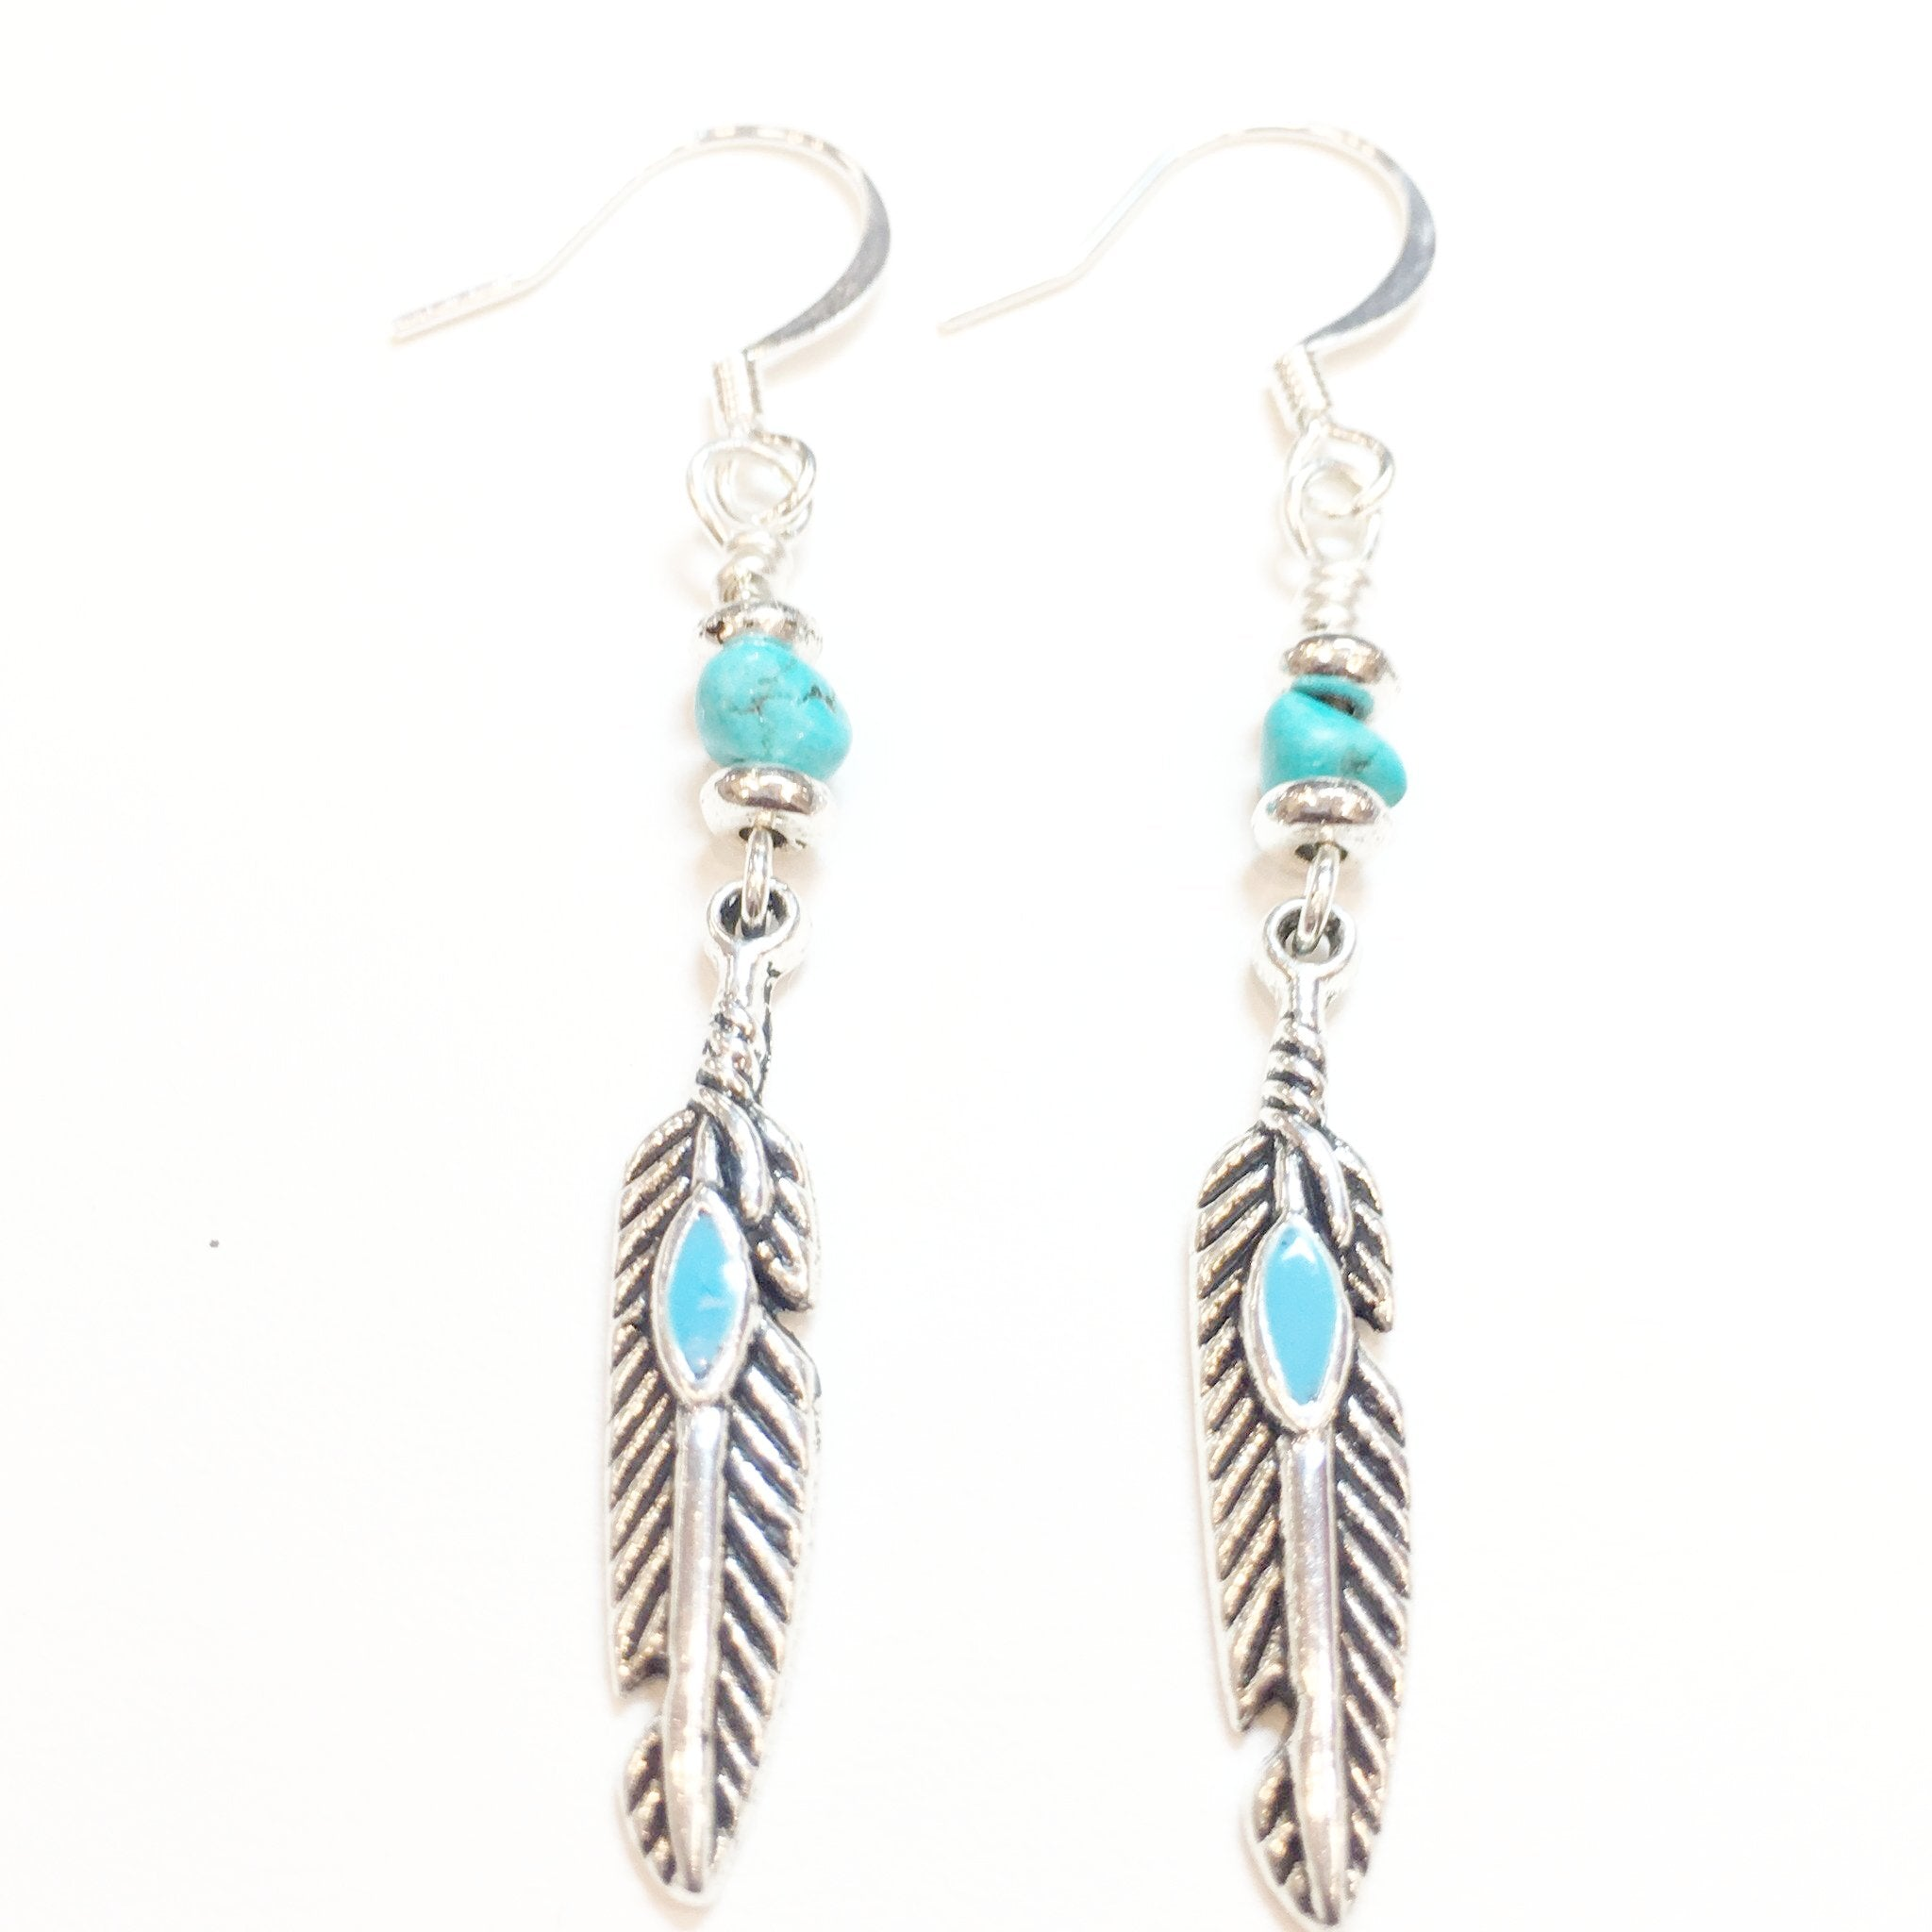 Turquoise and Silver Teardrop Earring - Real Chic Boutique  - 1